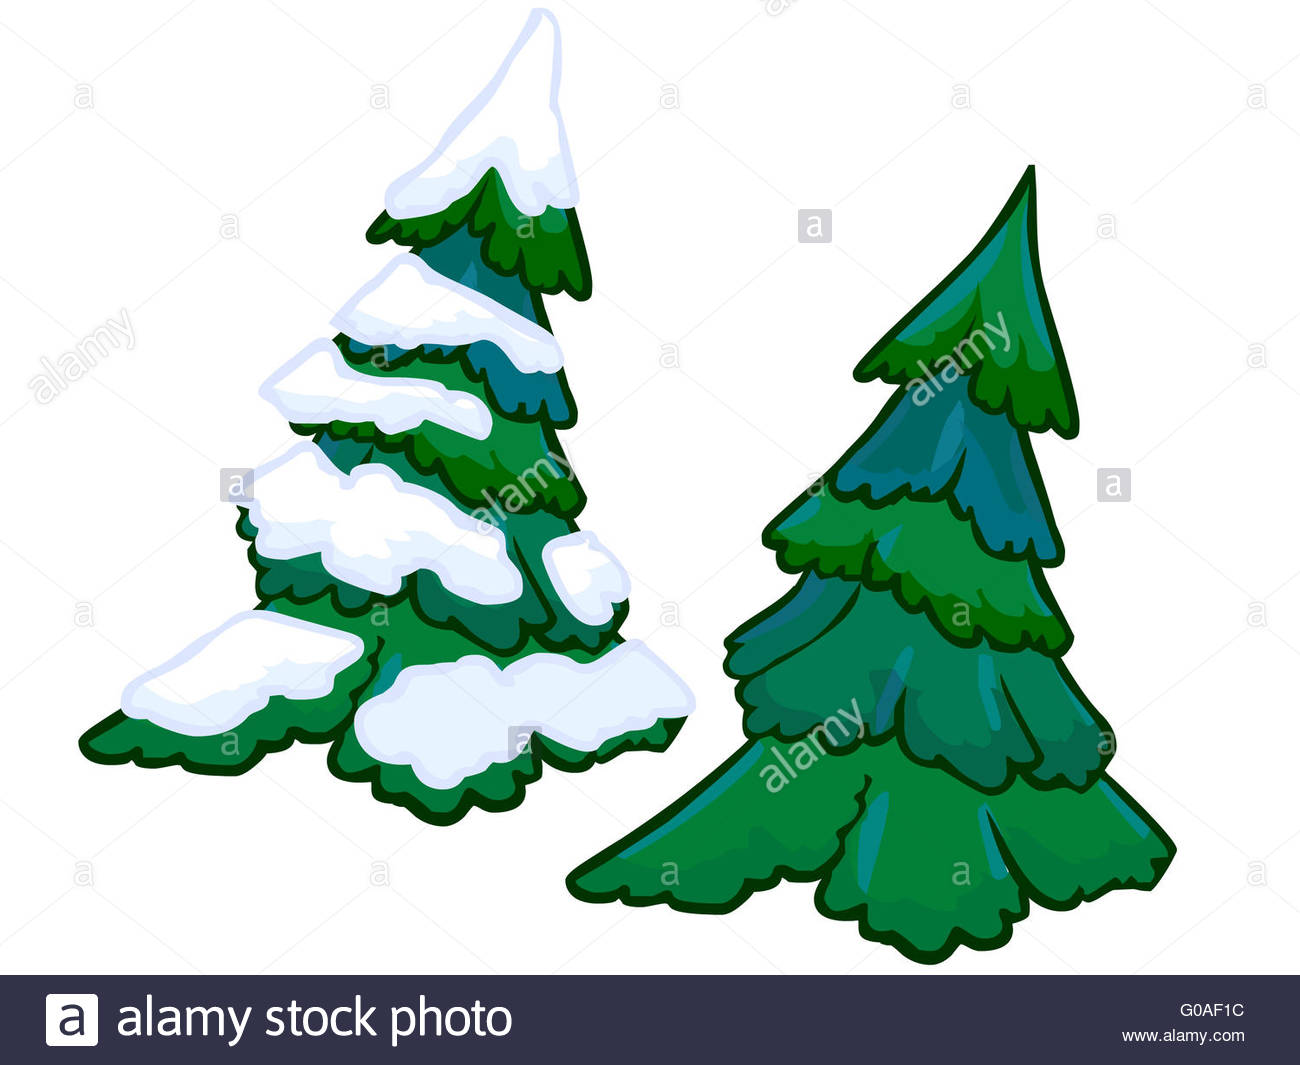 Cartoon Snowy Tree High Resolution Stock Photography And Images Alamy The tree that mickey and pluto chop down to bring home for christmas is the tree that chip 'n dale live in. https www alamy com stock photo the cartoon illustration of a spruce tree 103493528 html